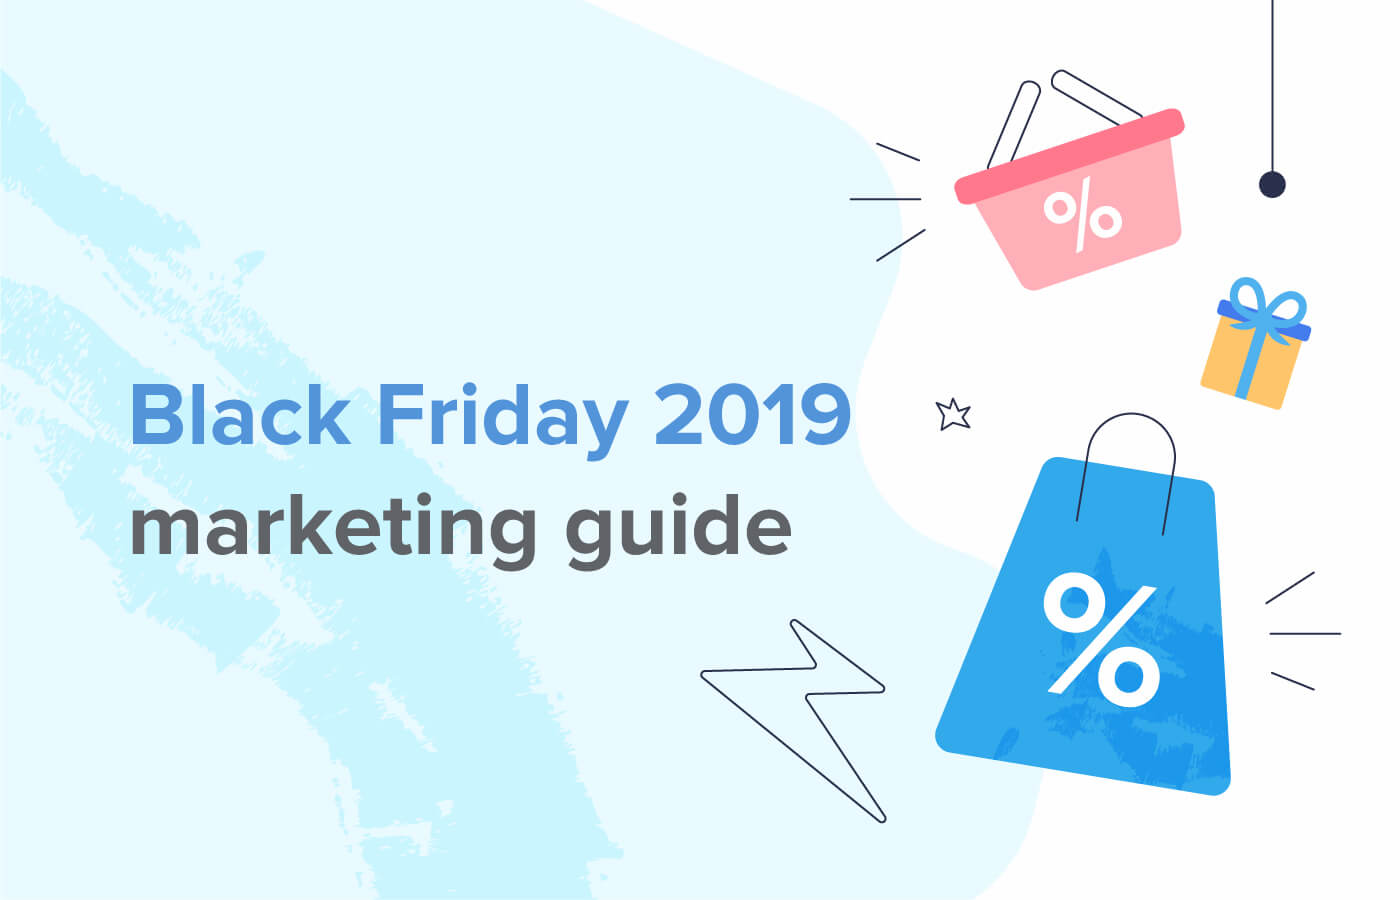 The complete Black Friday 2019 marketing guide for SMS, Messenger and push notifications